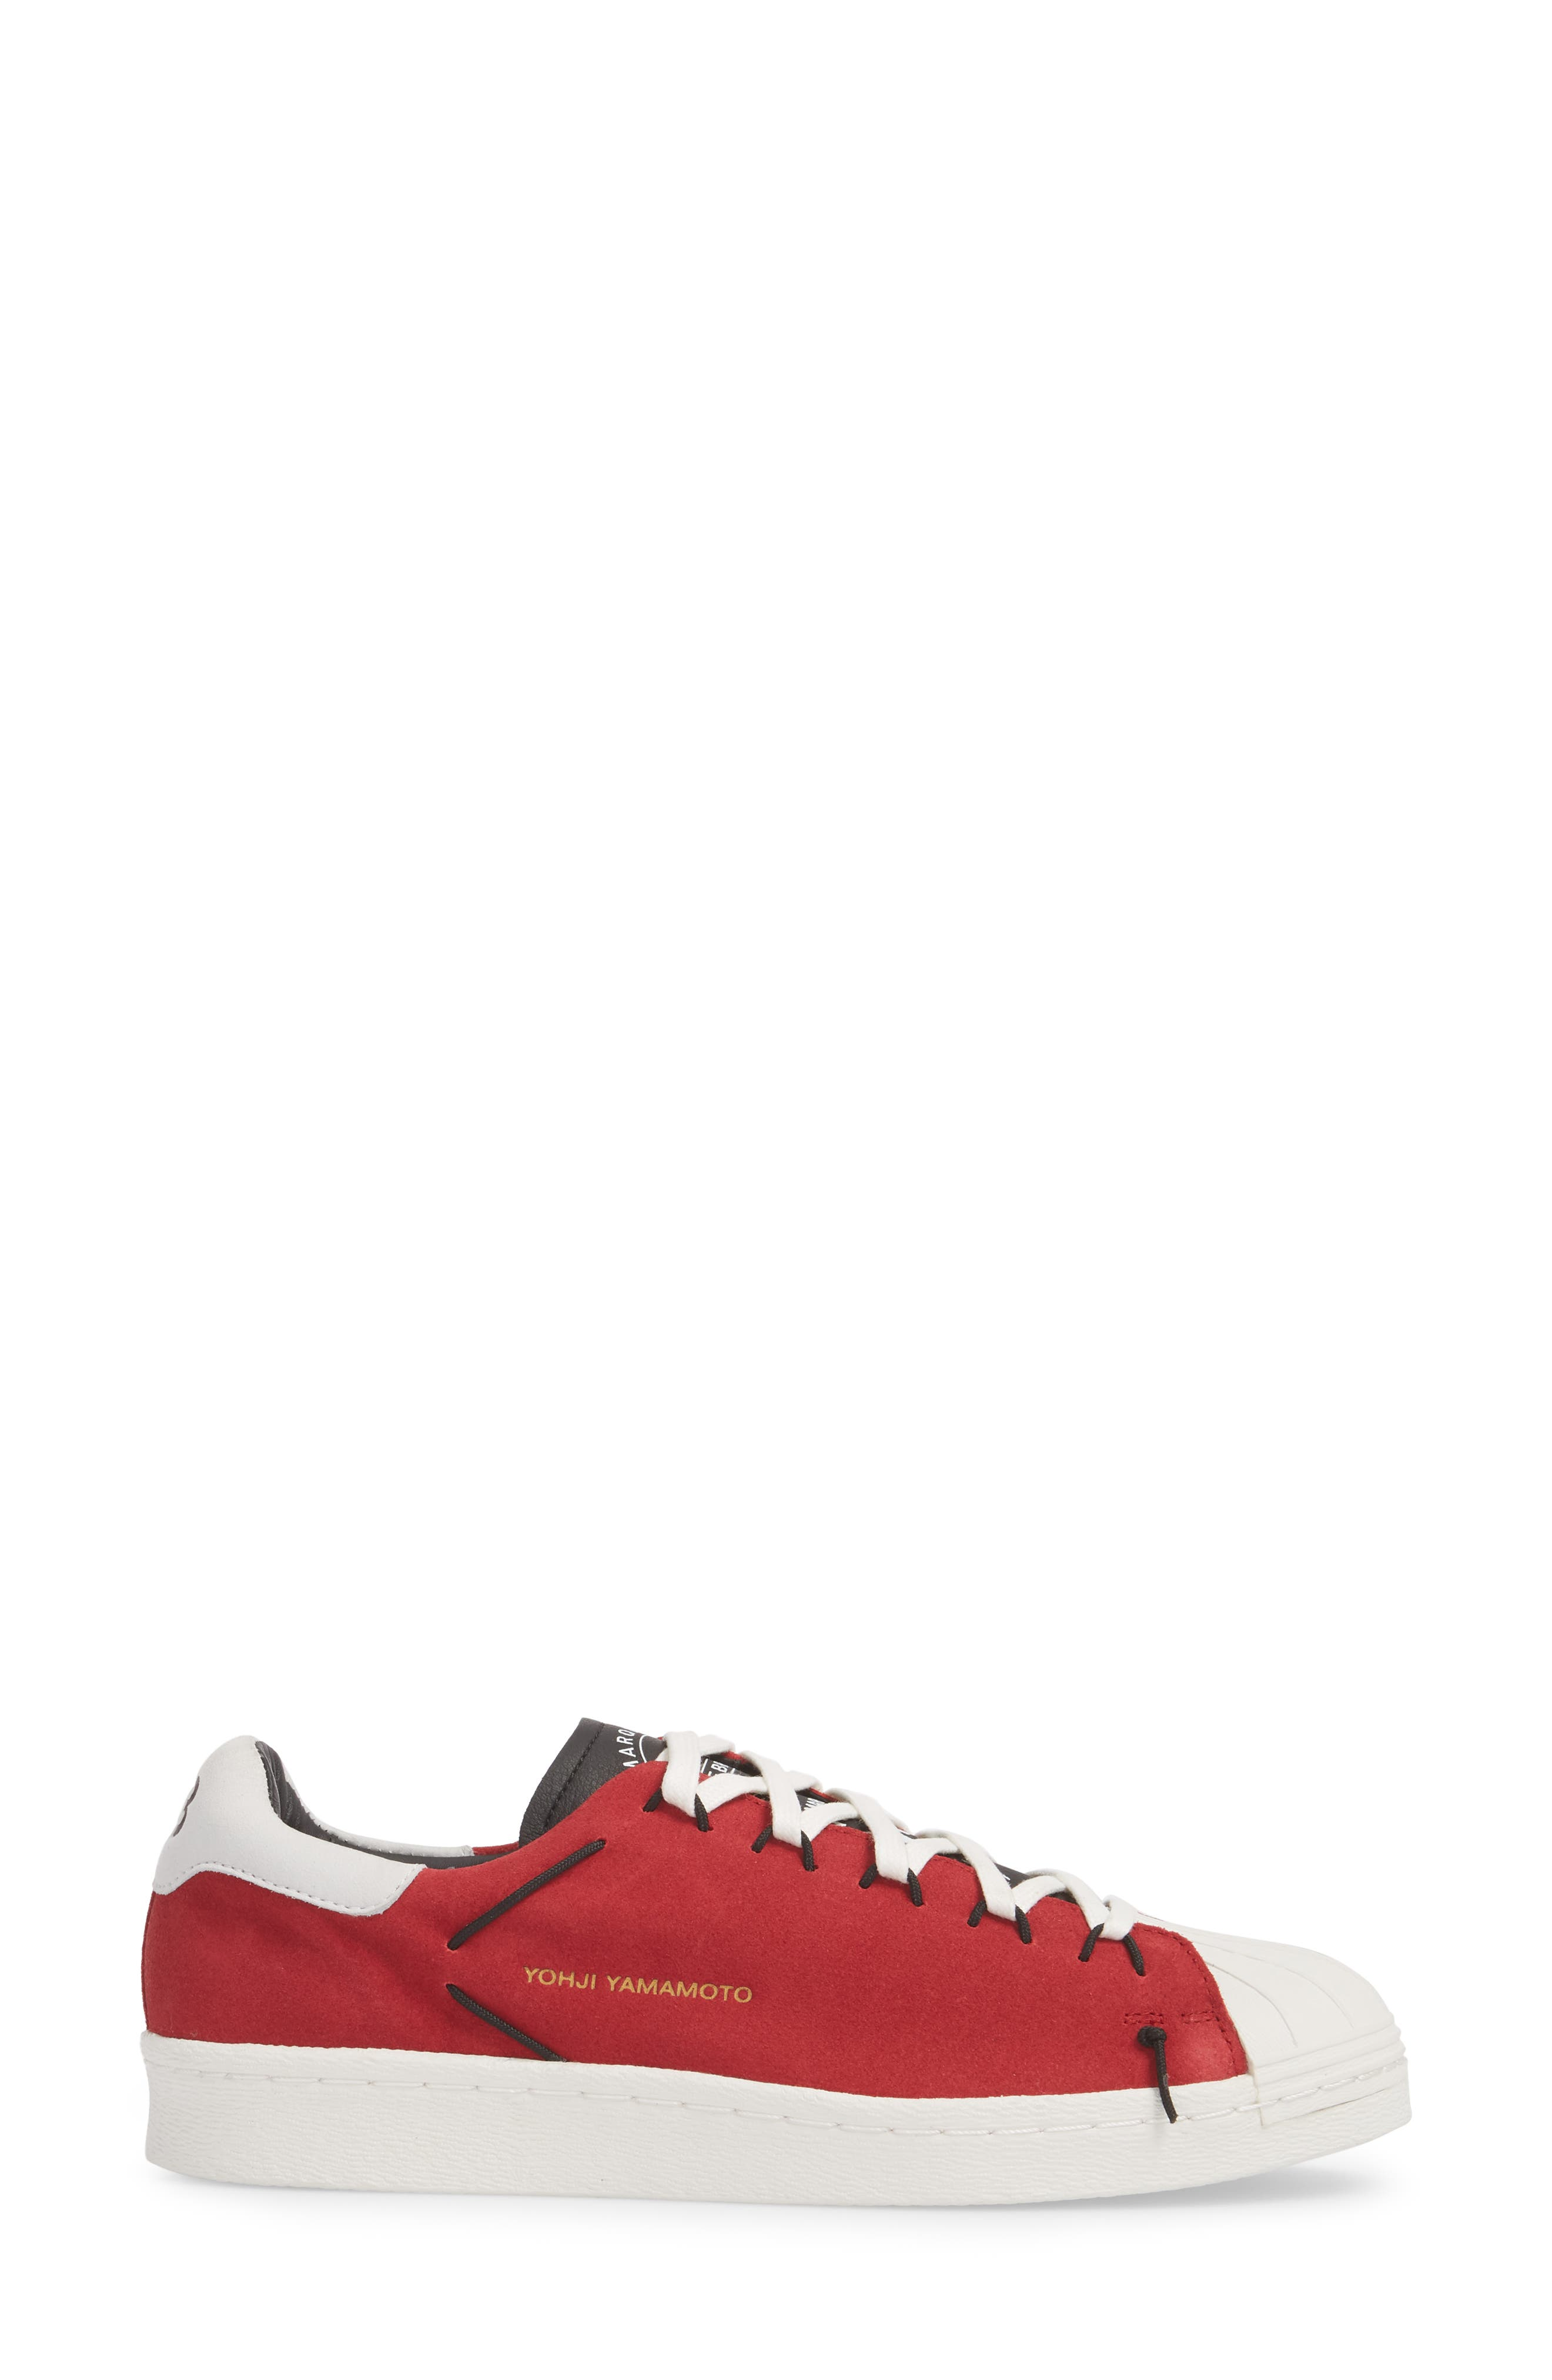 x adidas Super Knot Low Top Sneaker,                             Alternate thumbnail 3, color,                             602